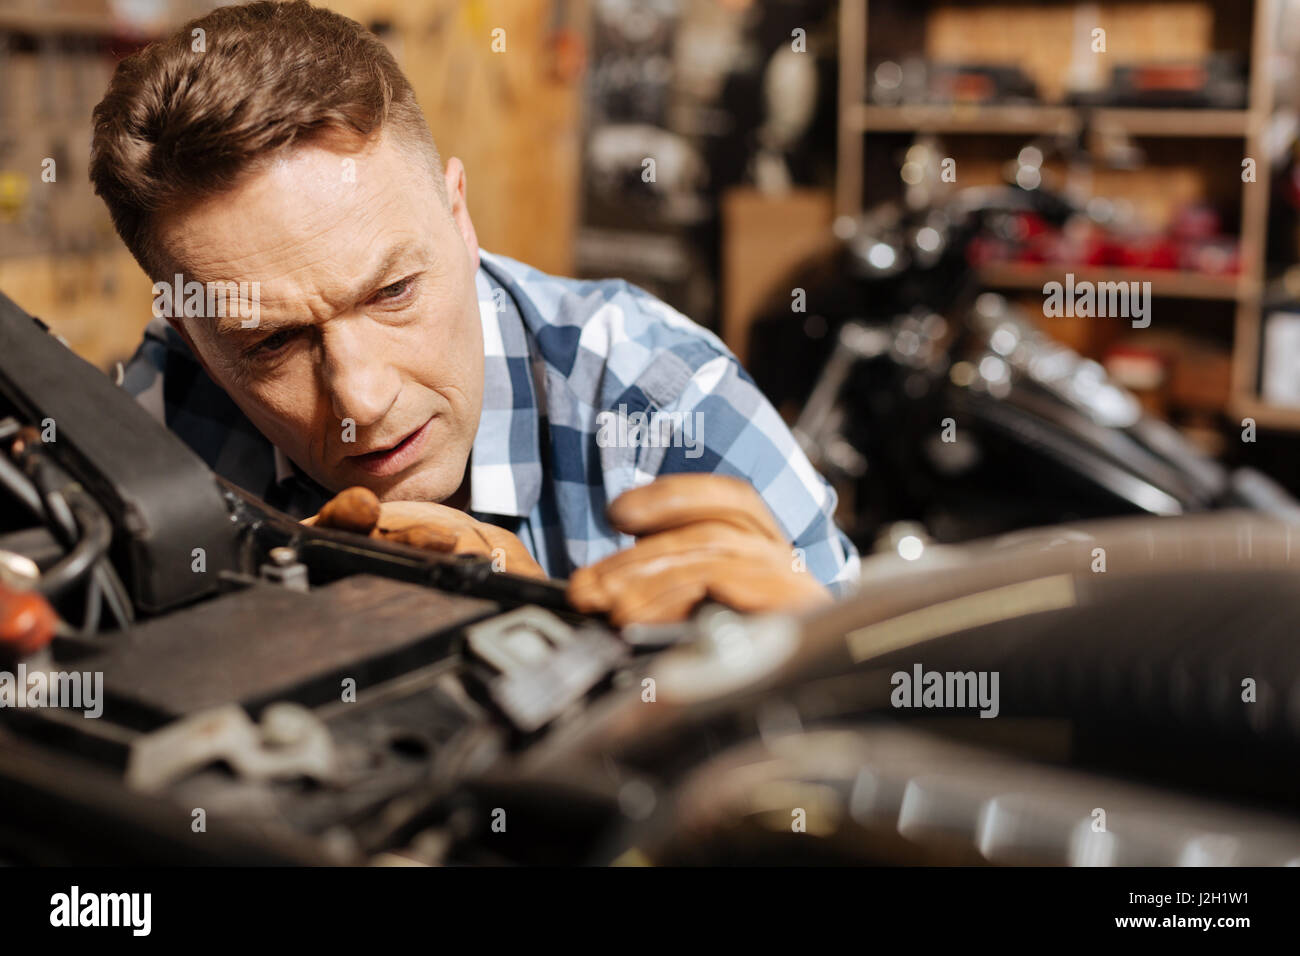 Skillful amateur mechanic making his bike perfect - Stock Image